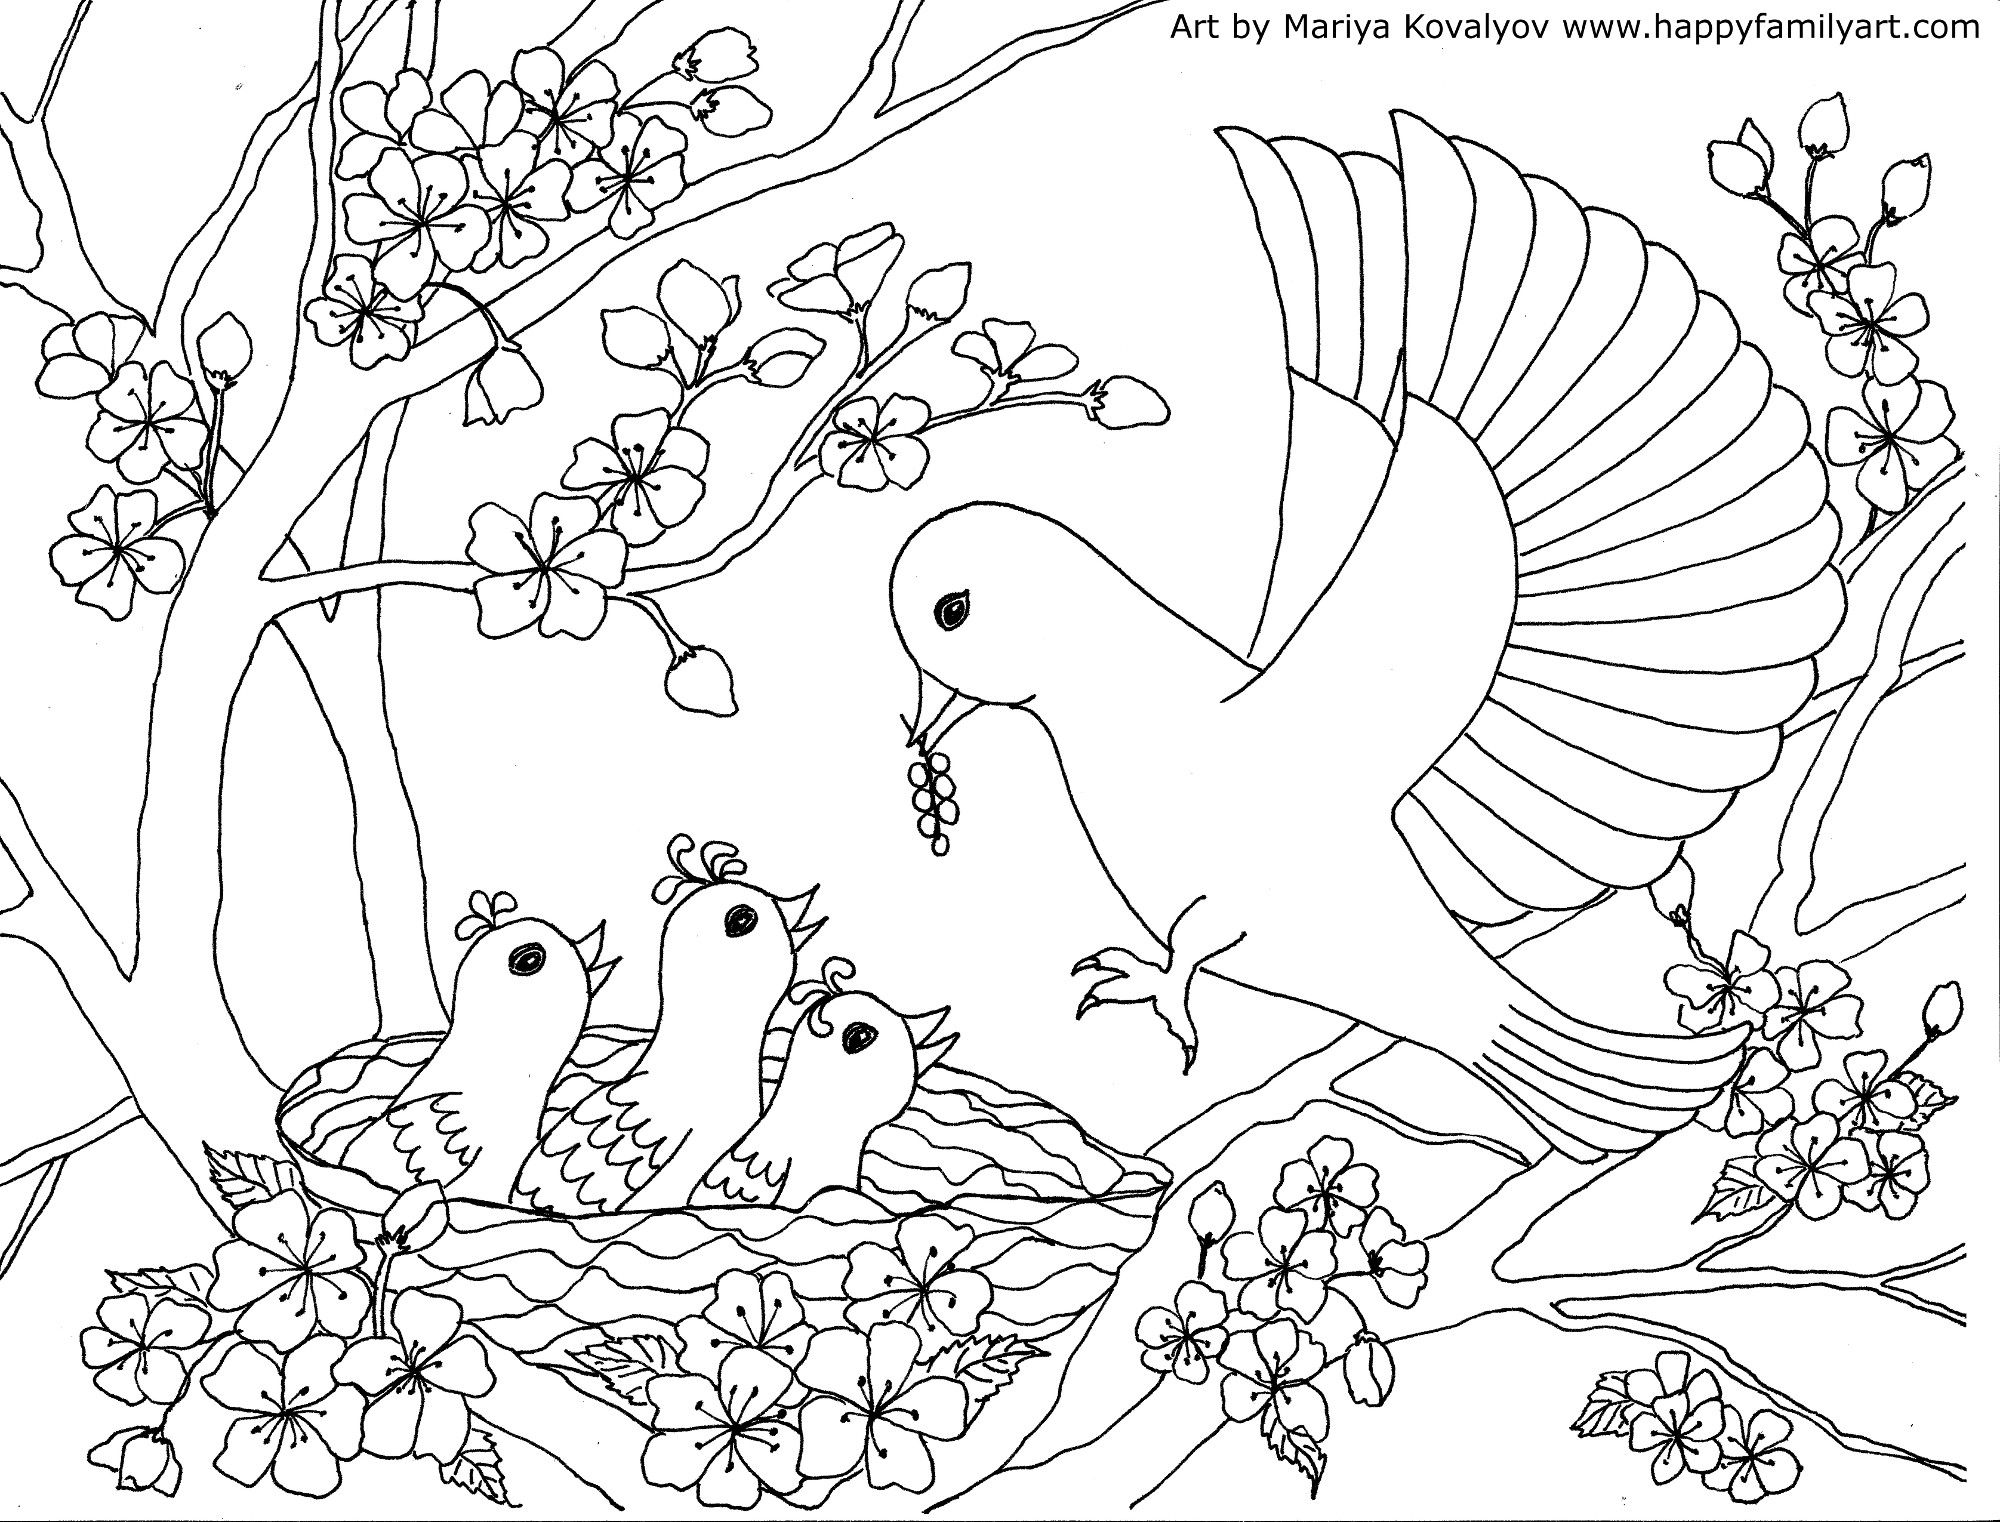 Mother Bird Baby Birds Coloring Page Please Make Sure To Know That All Of These Pages Are For Personal Use Only An Dont Them Any